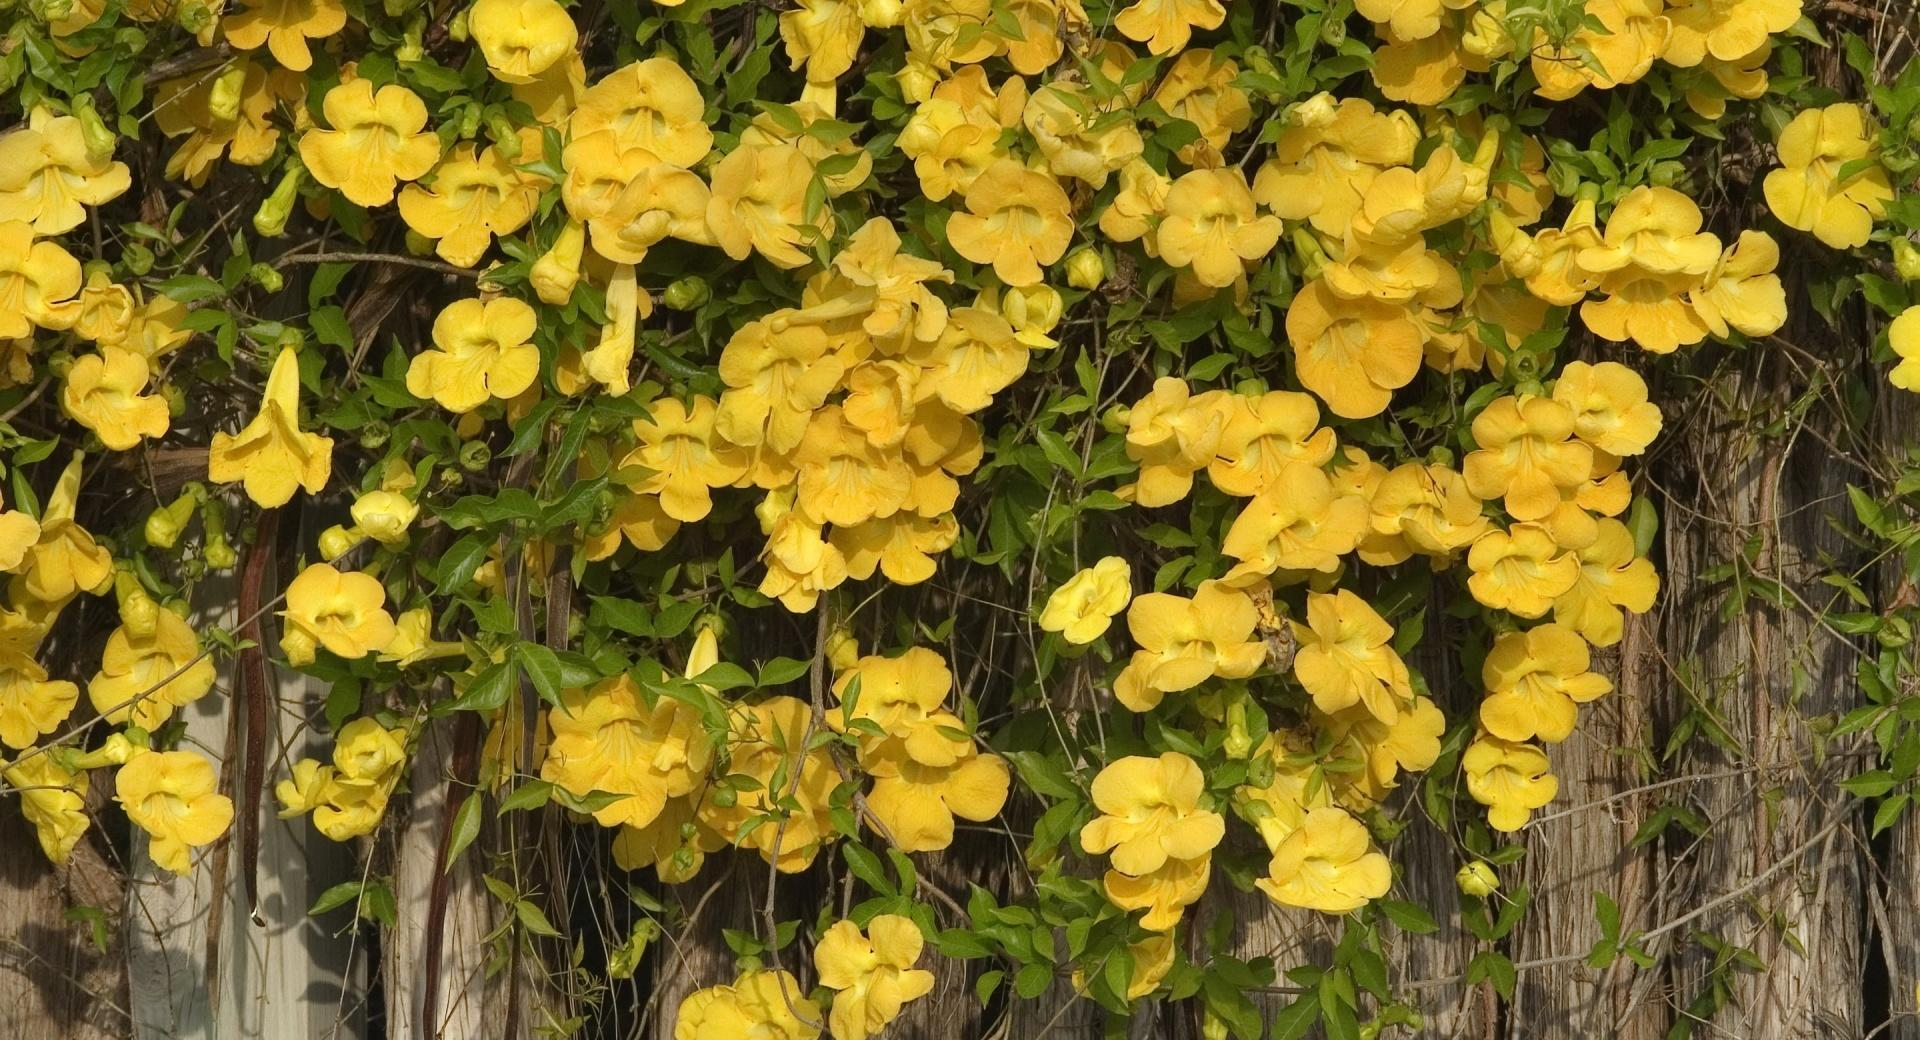 Yellow Flowers On The Fence wallpapers HD quality